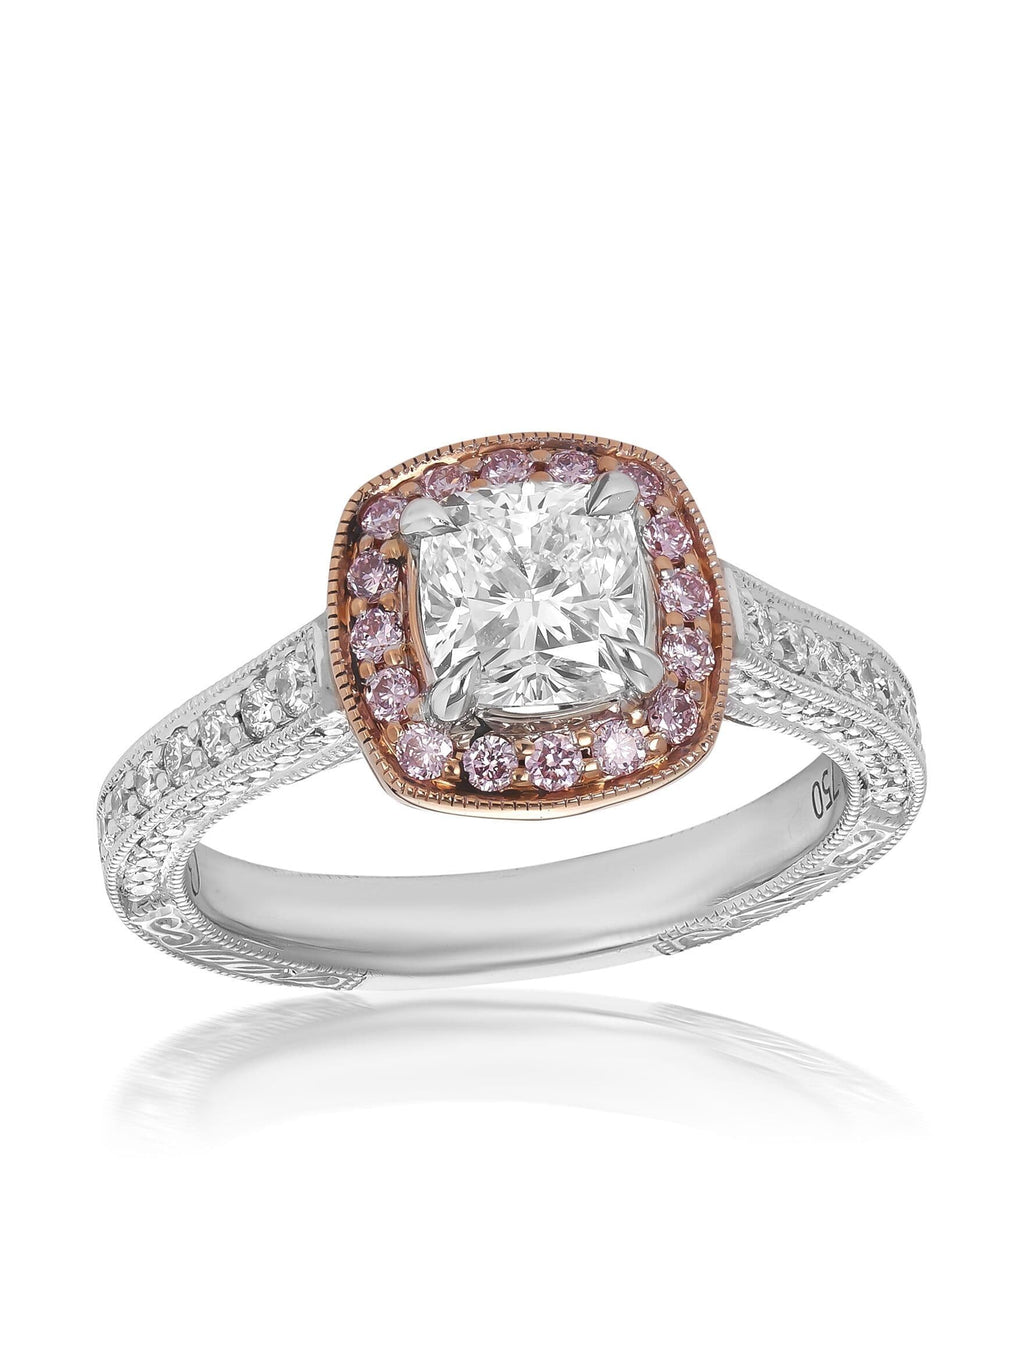 Royal Cushion Cut Diamond Engagement Ring